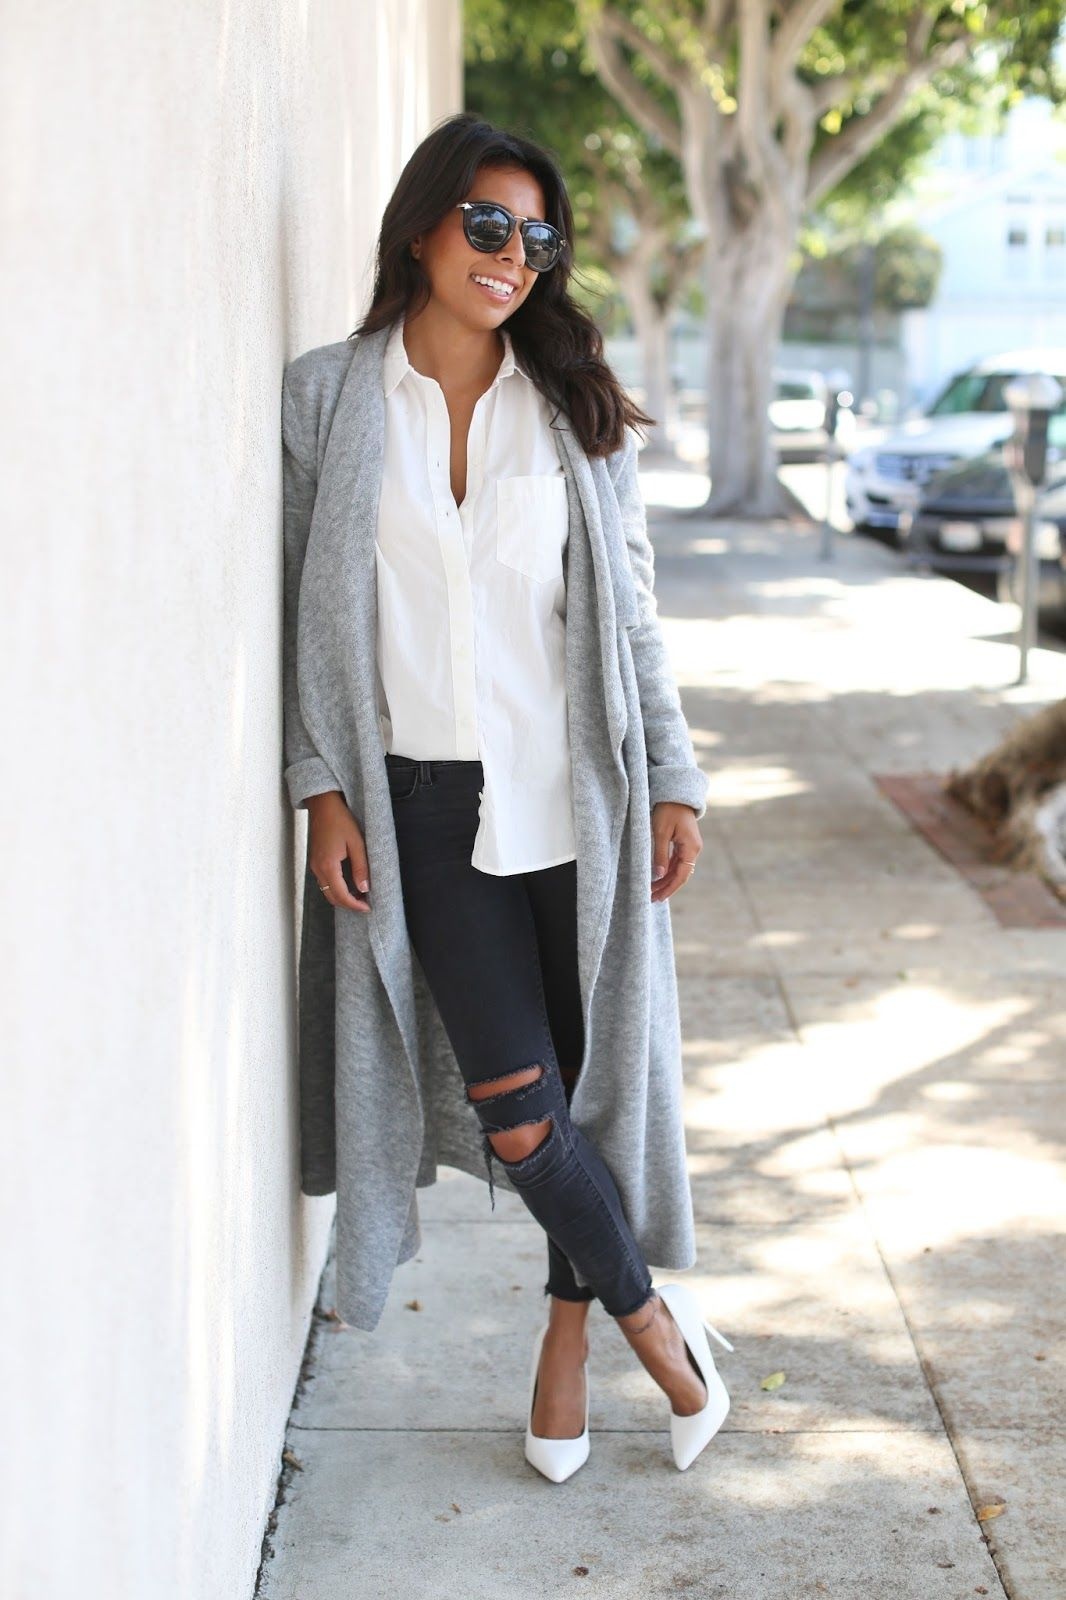 bb dakota long cardigan, how to wear long cardigan, j brand ...